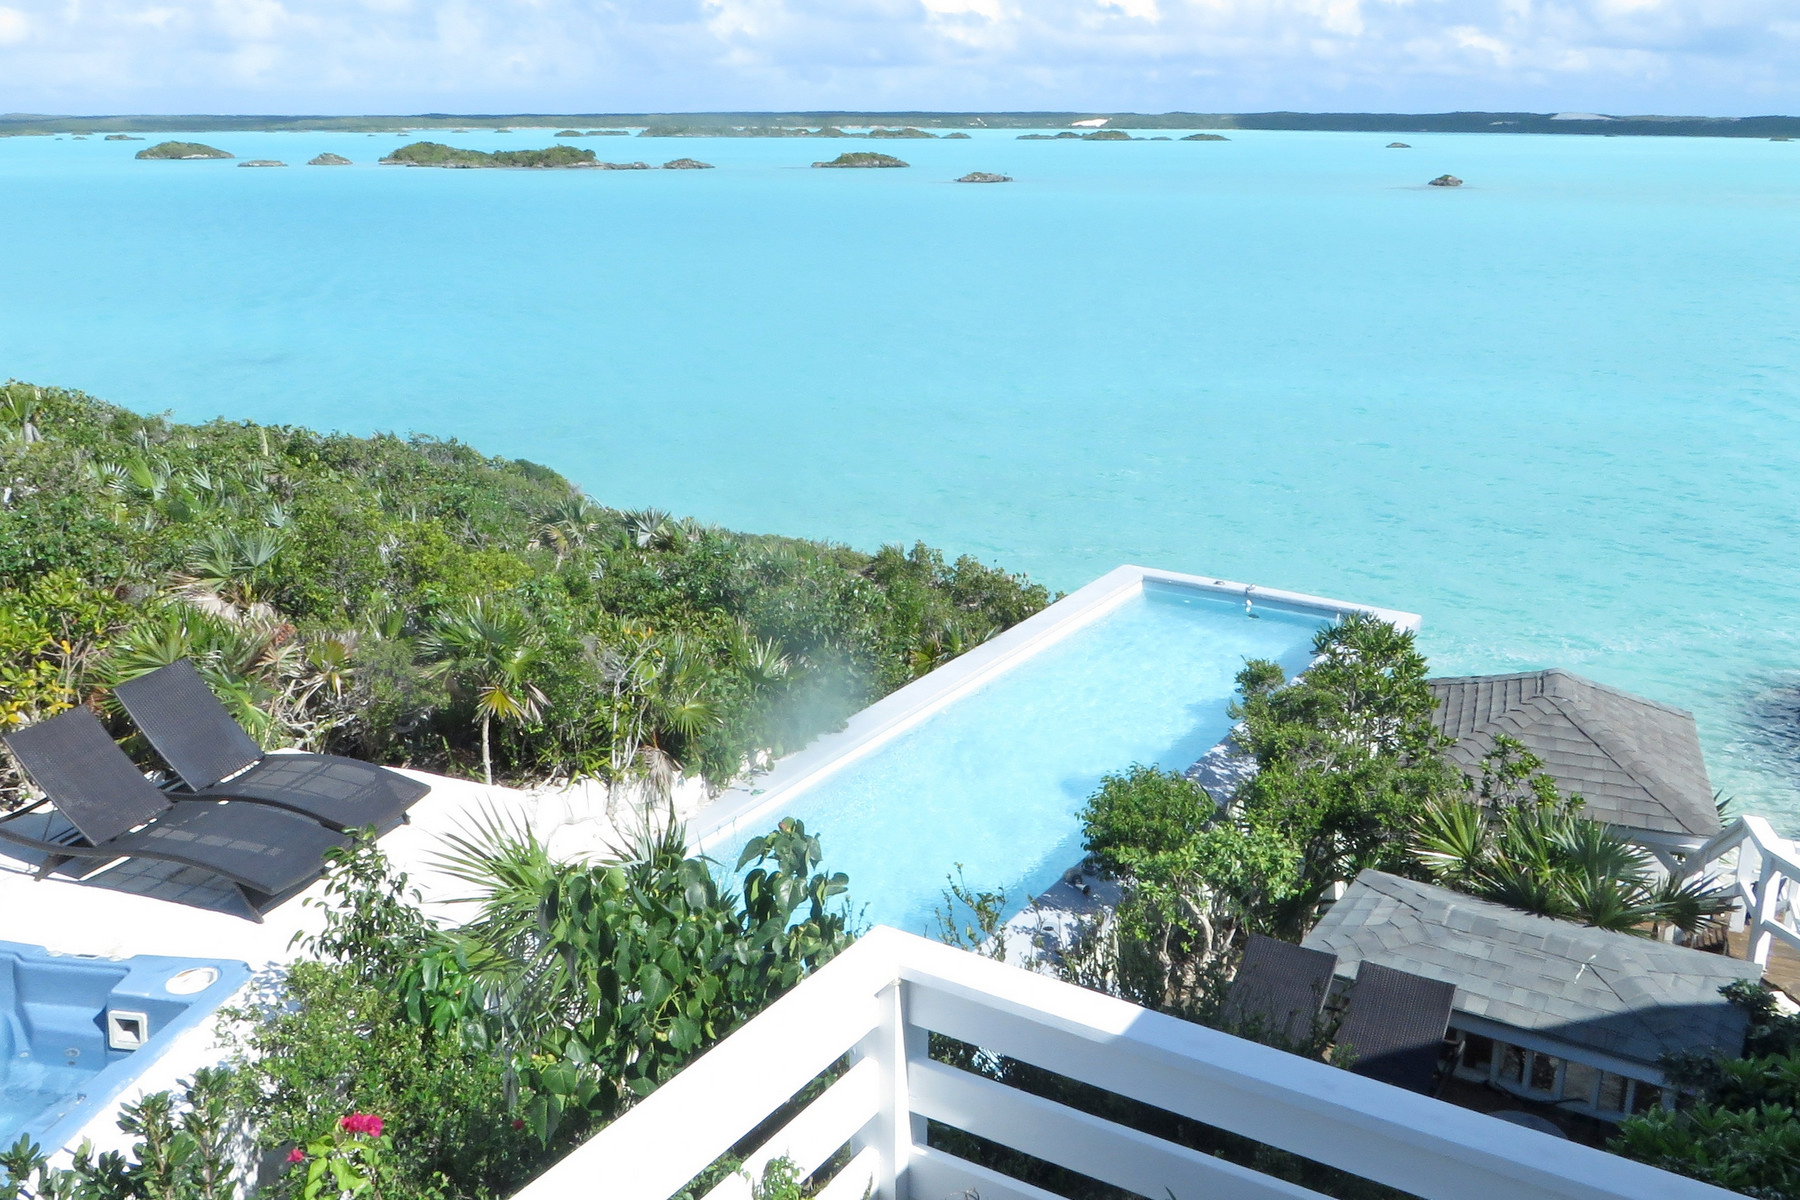 Additional photo for property listing at Chalk Sound Water Front Chalk Sound Villa, Chalk Sound Rd Chalk Sound, Providenciales TKCA 1ZZ Îles Turques Et Caïques